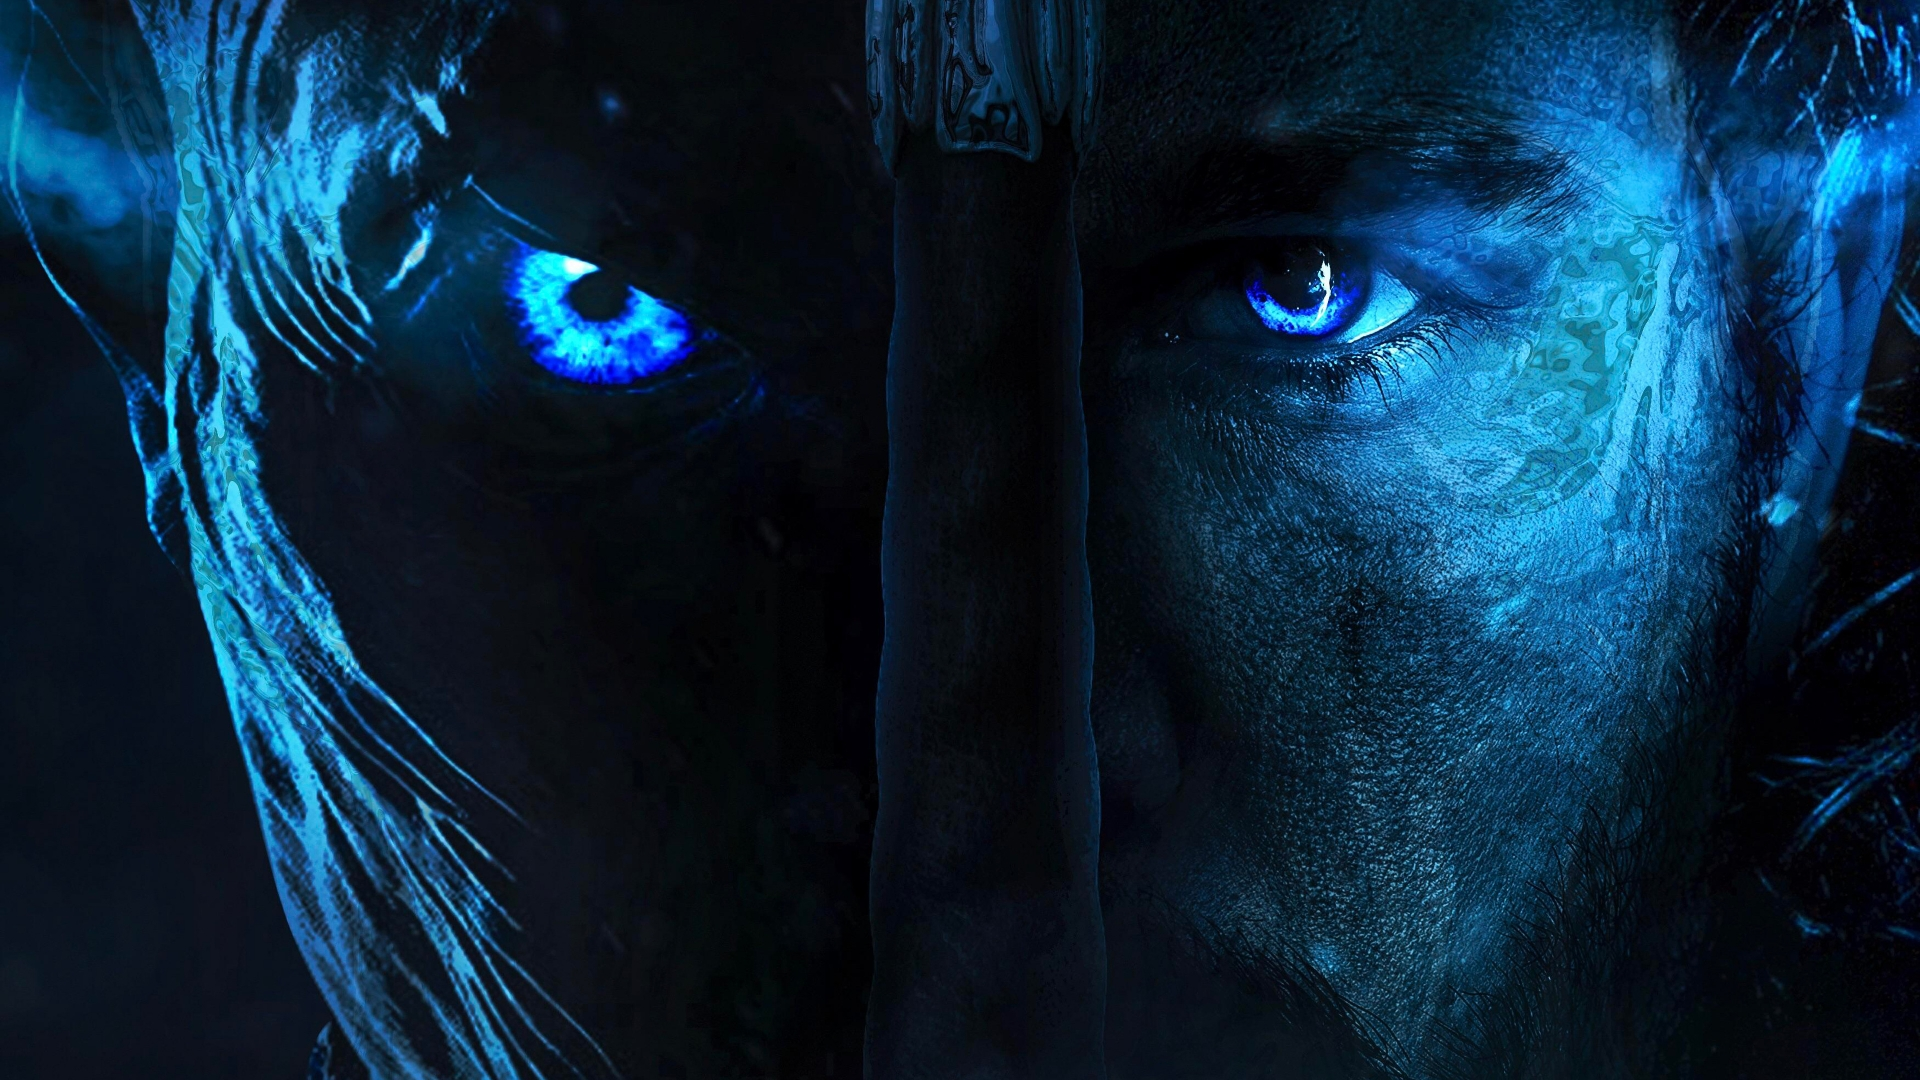 Jon Snow Night King Wallpaper Hd - HD Wallpaper